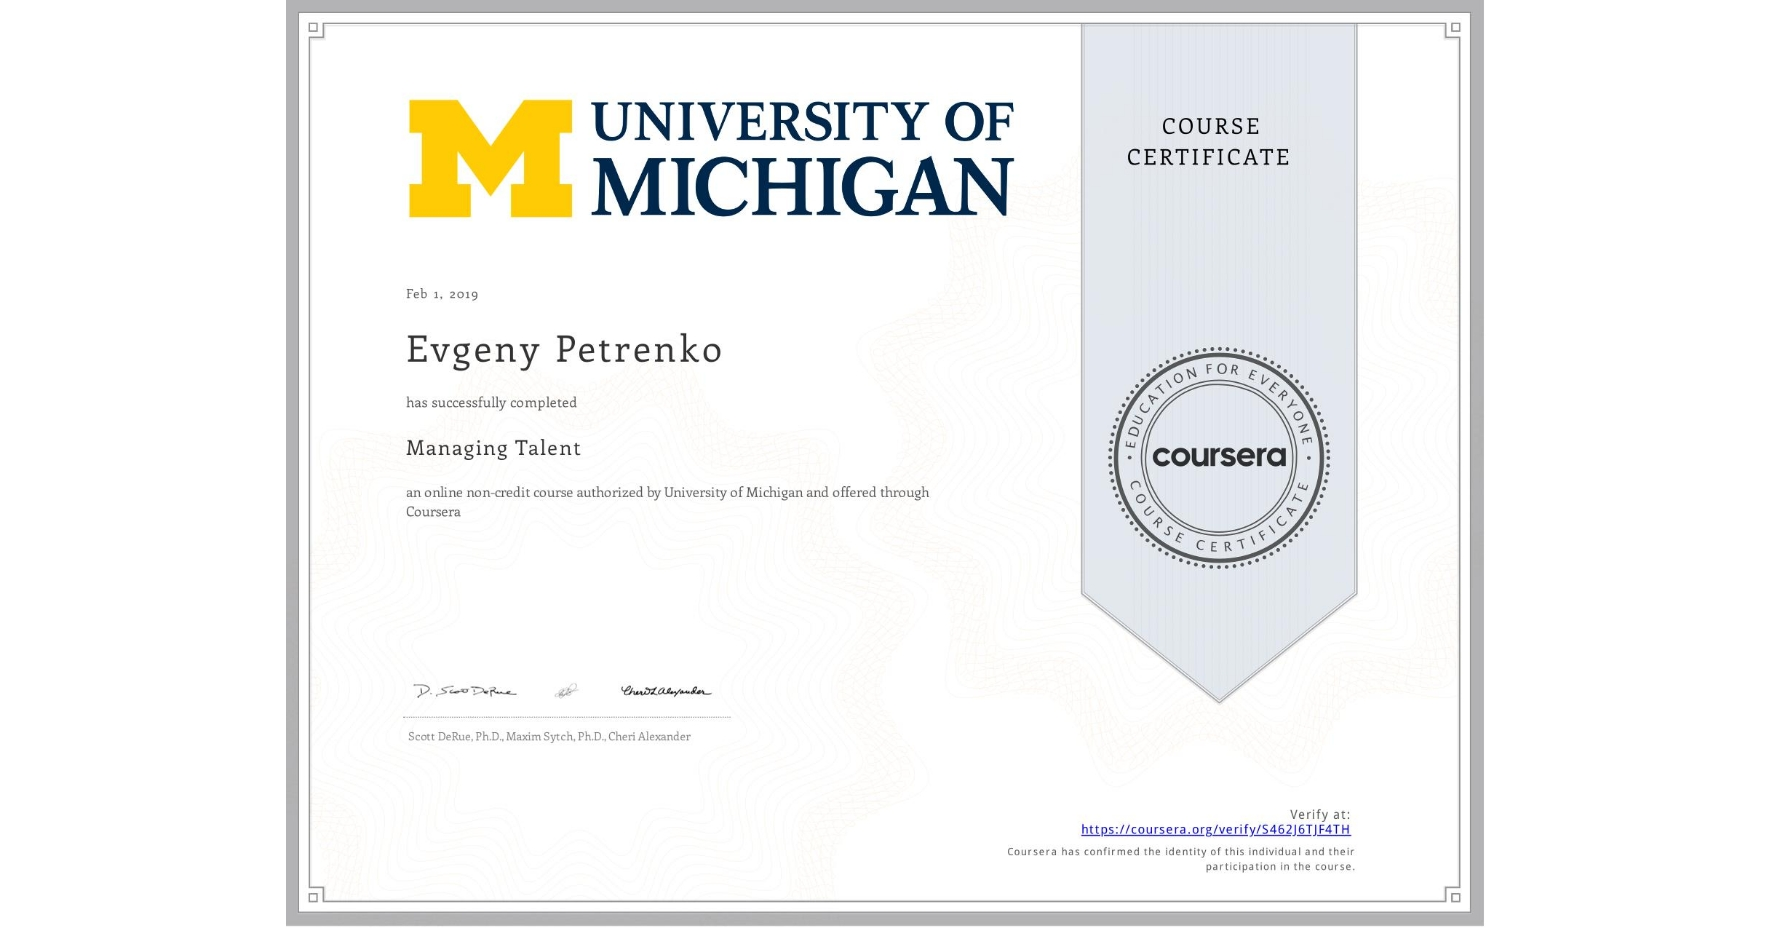 View certificate for Evgeny Petrenko, Managing Talent, an online non-credit course authorized by University of Michigan and offered through Coursera